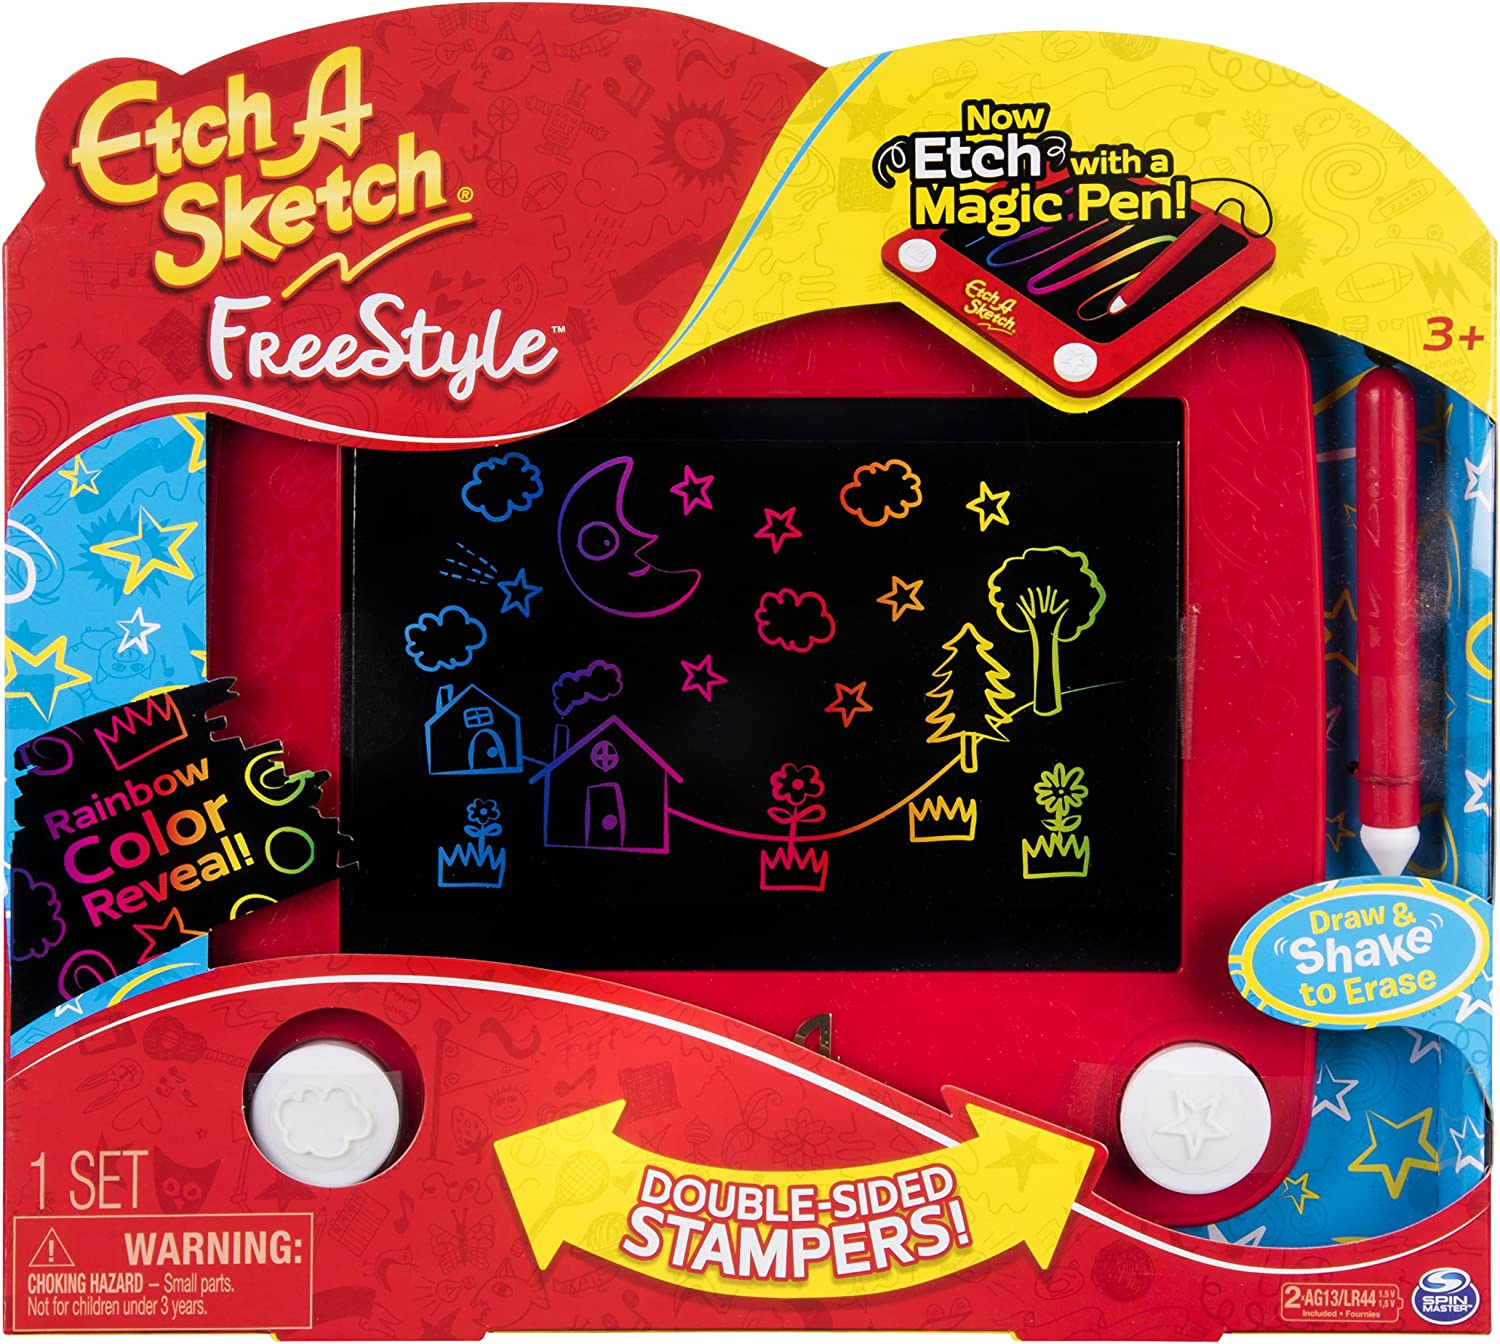 Etch A Sketch doodle Draw /& Slide To Erase No Knobs No Shake Various Colors